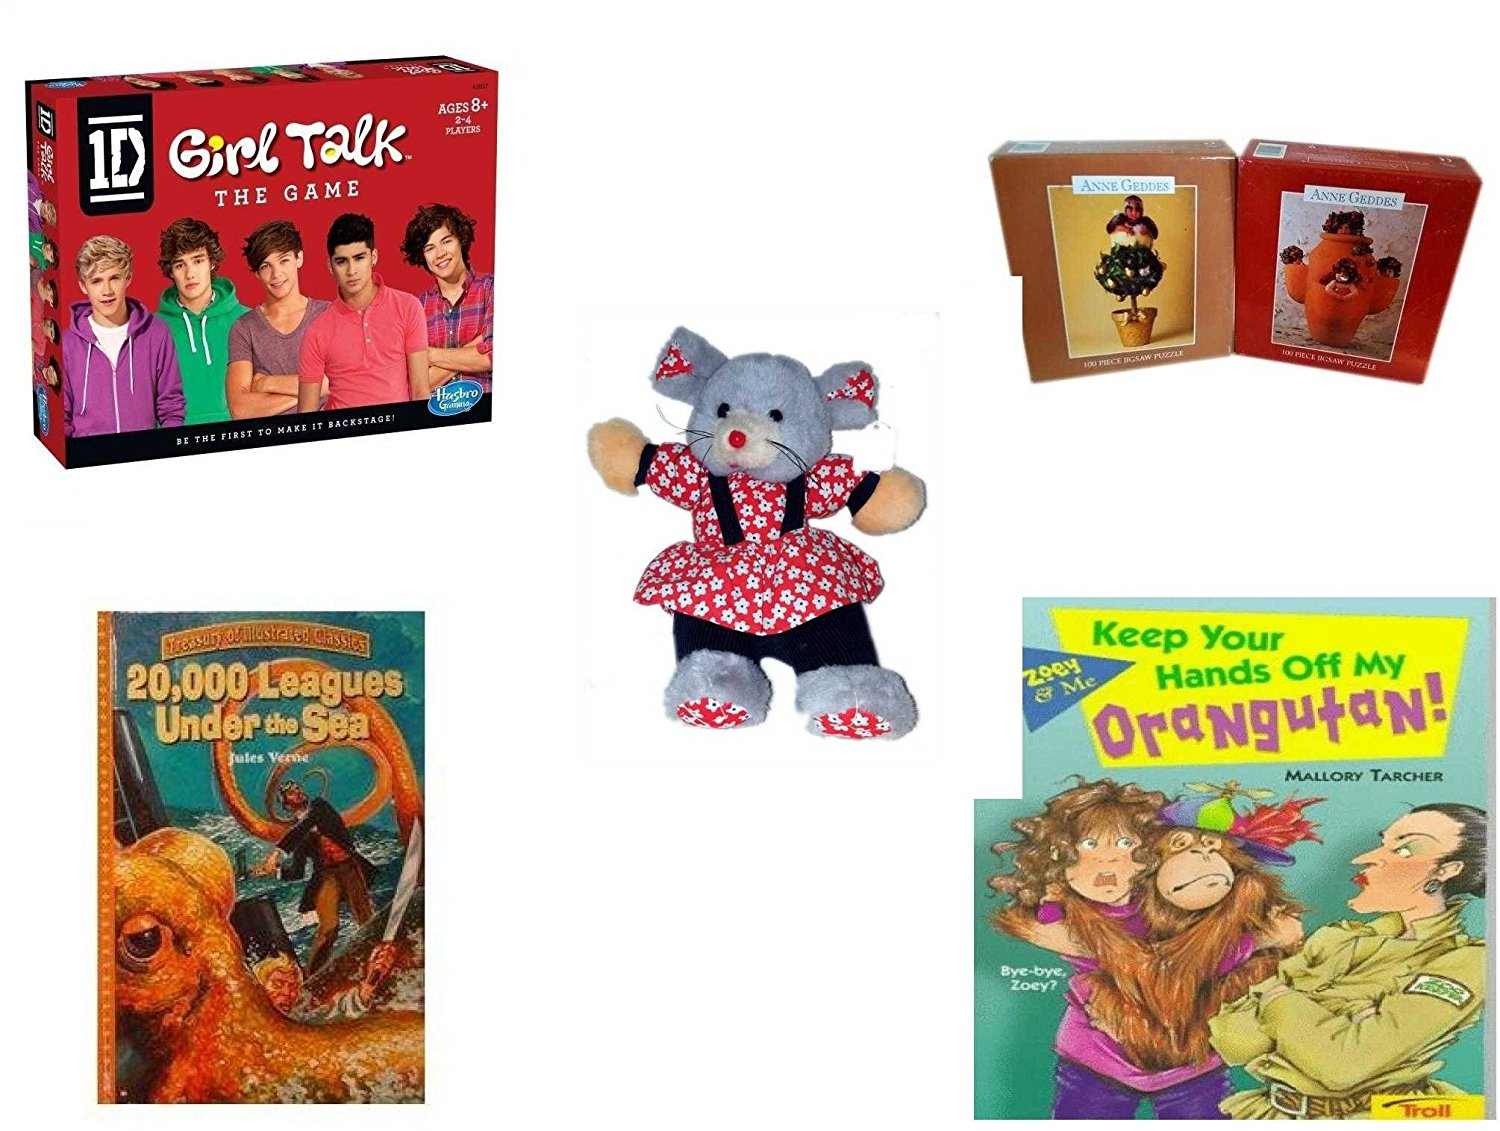 """Girl's Gift Bundle - Ages 6-12 [5 Piece] - 1D Girl Talk The Game One Direction - Set of 2 Anne Geddes 100 Pieces Puzzle No. 1510-10, 1510-12 - Play-By-Play Red Flower Patterned Girl Mouse Plush 11"""""""